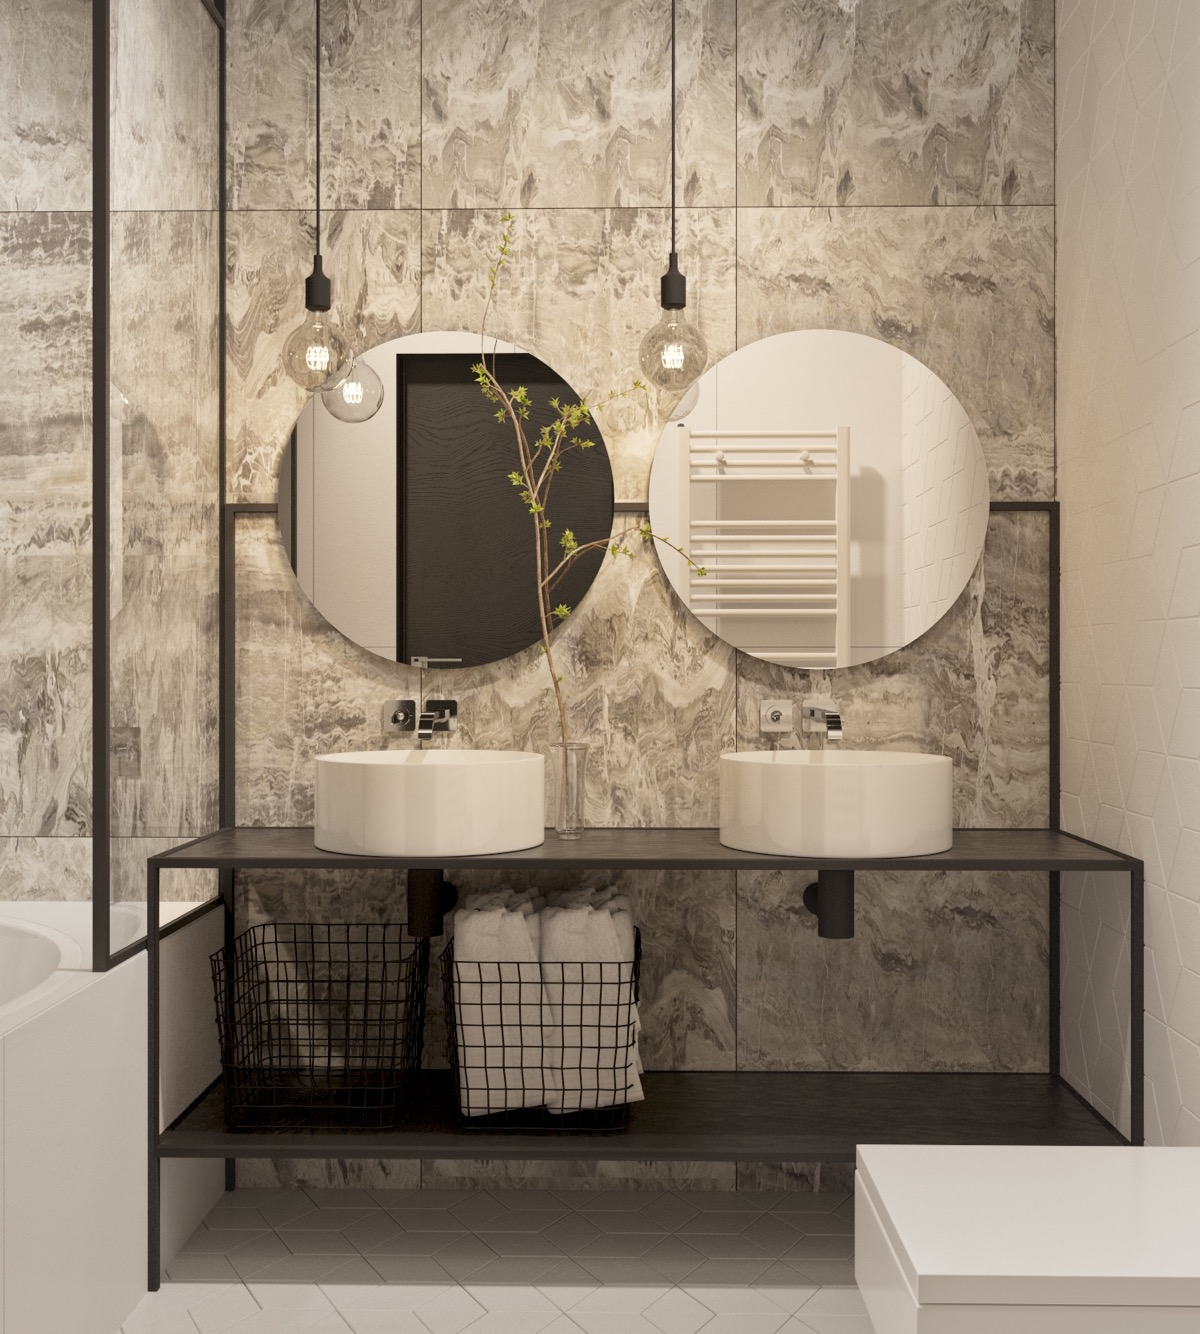 Modern Hotel Bathroom Design Ideas: 51 Industrial Style Bathrooms Plus Ideas & Accessories You